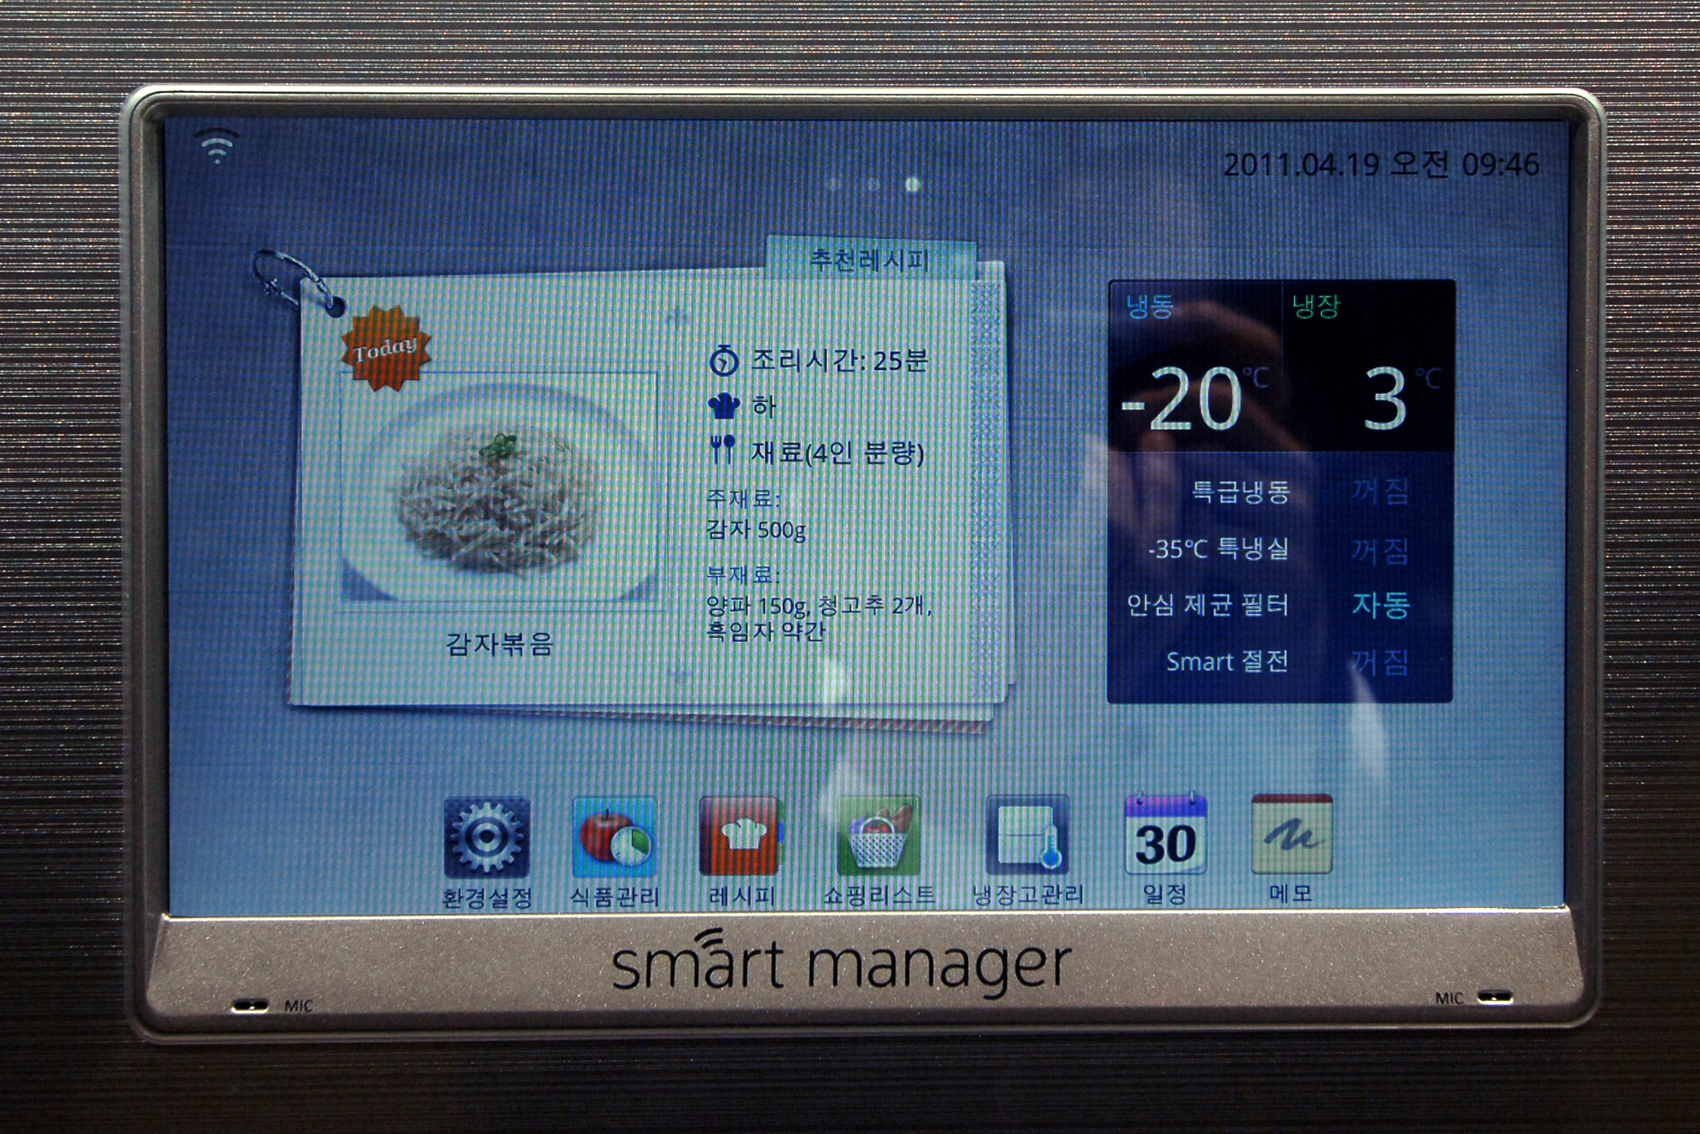 A screenshot of the LG DIOS smart refrigerator's smart manager display